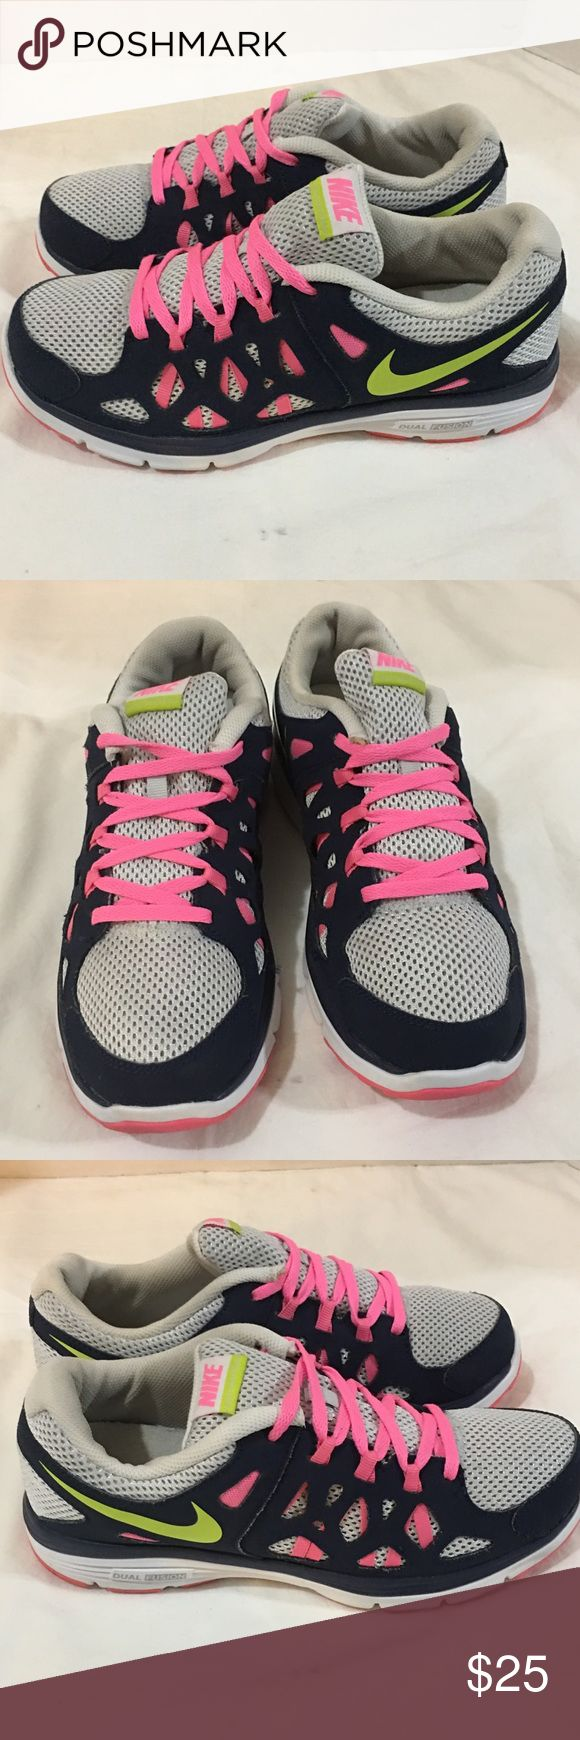 Nike Dual Fusion Kids Pre-Owned EUC Size 6.5 PRE-OWNED Size 6.5   CONDITION IS 9.5/10   # Comes with Replacement box     Any Pics On This Page are of Actual Product You Will Be Purchasing.    WE ONLY PROVIDE THE HIGHEST QUALITY PRE-OWNED Items. THEY ARE ALWAYS CLEAND AND READY TO WEAR Nike Shoes Sneakers